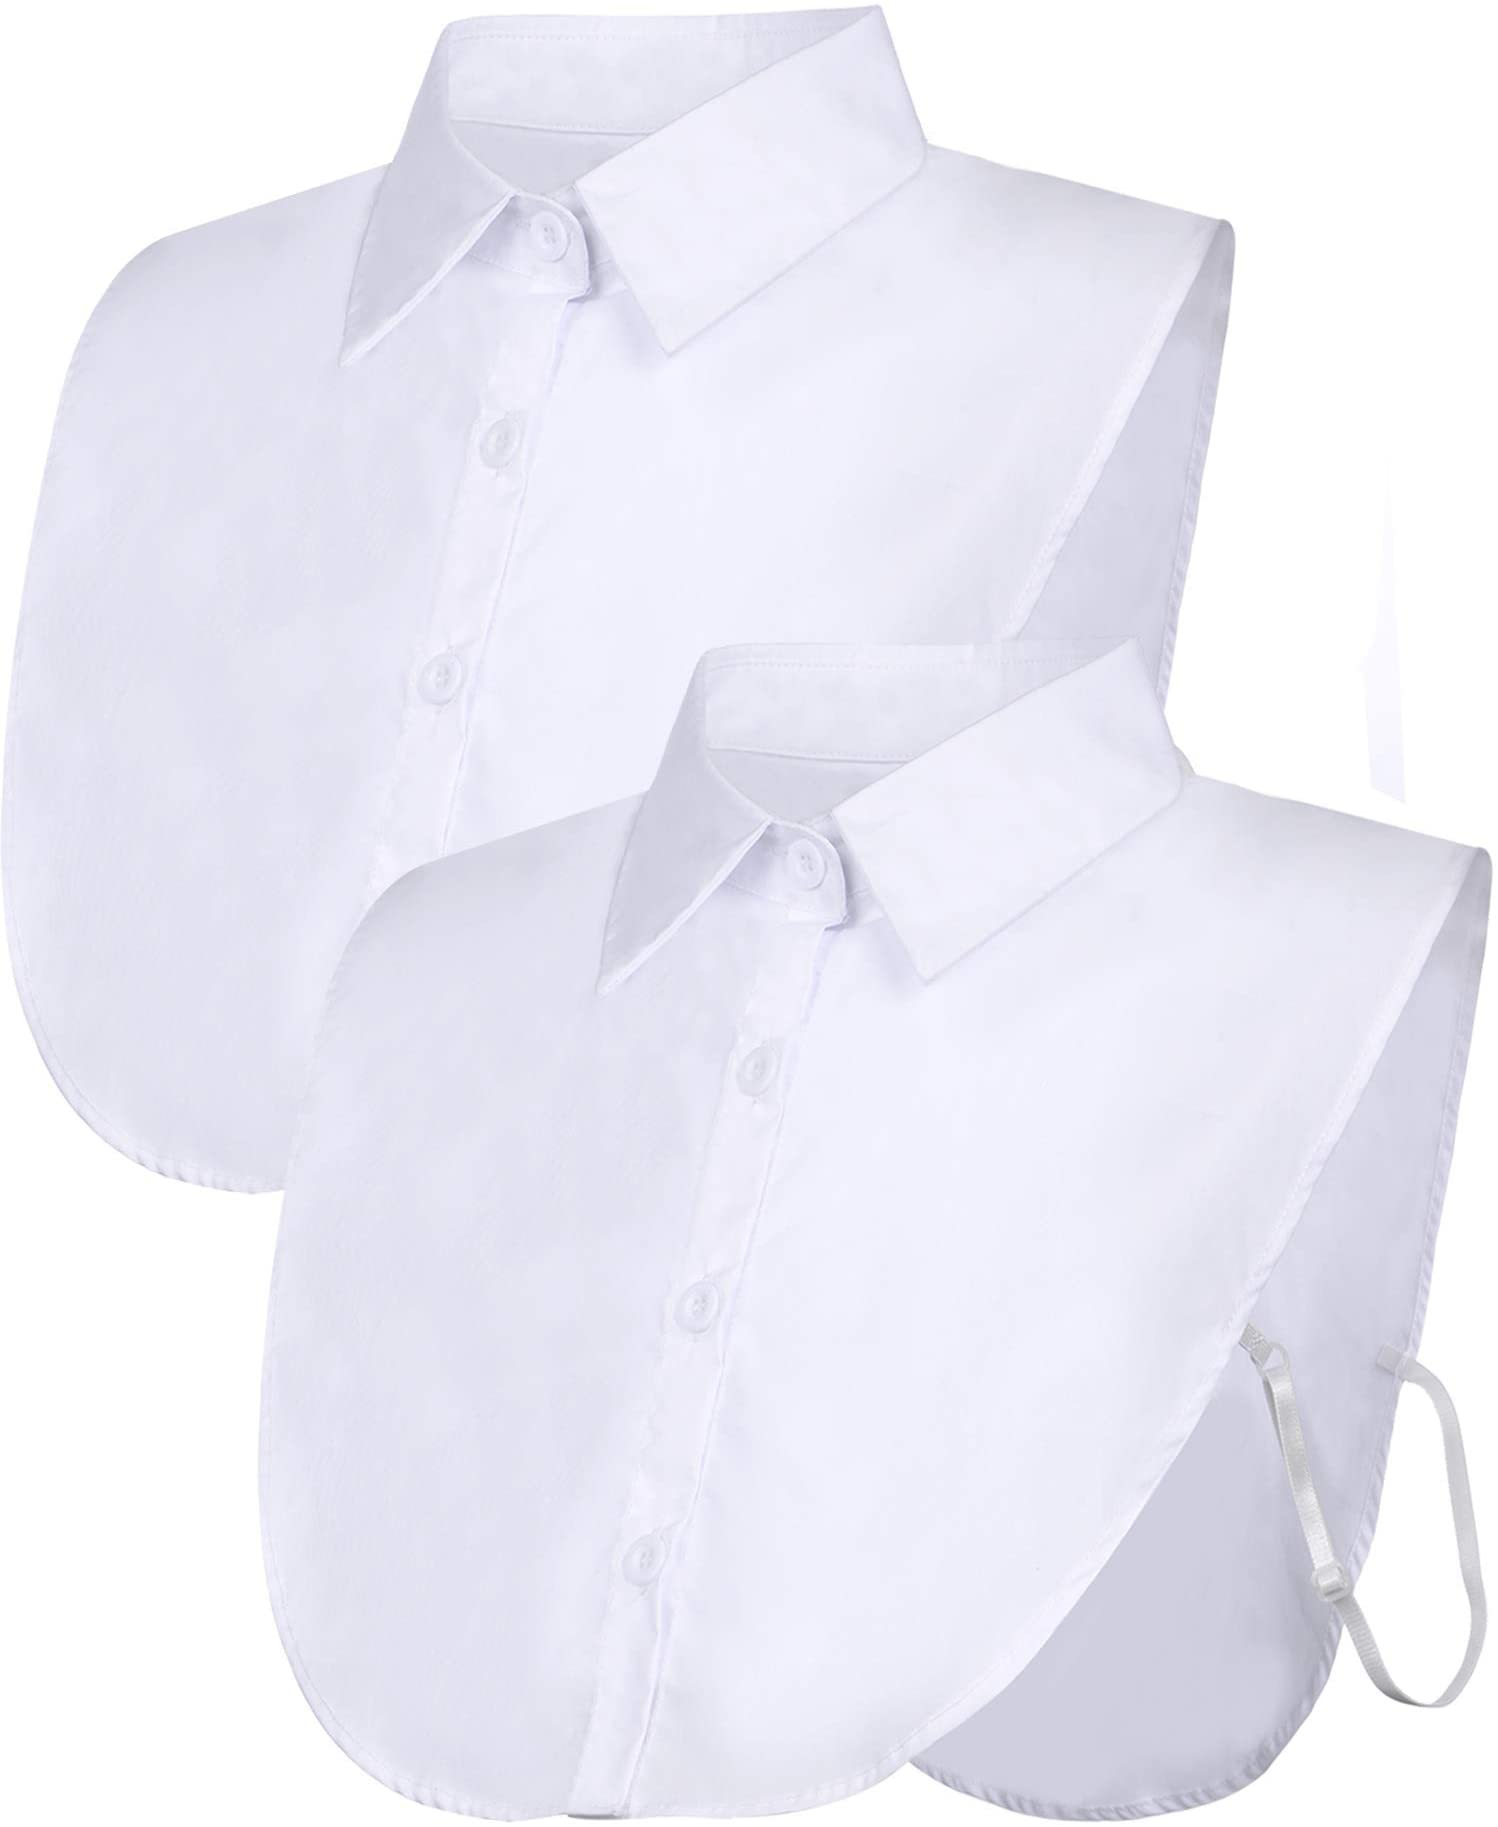 Fake Collar Detachable Dickey Collar Blouse Half Shirts Peter Pan Faux False Collar for Women /& Girls Favors